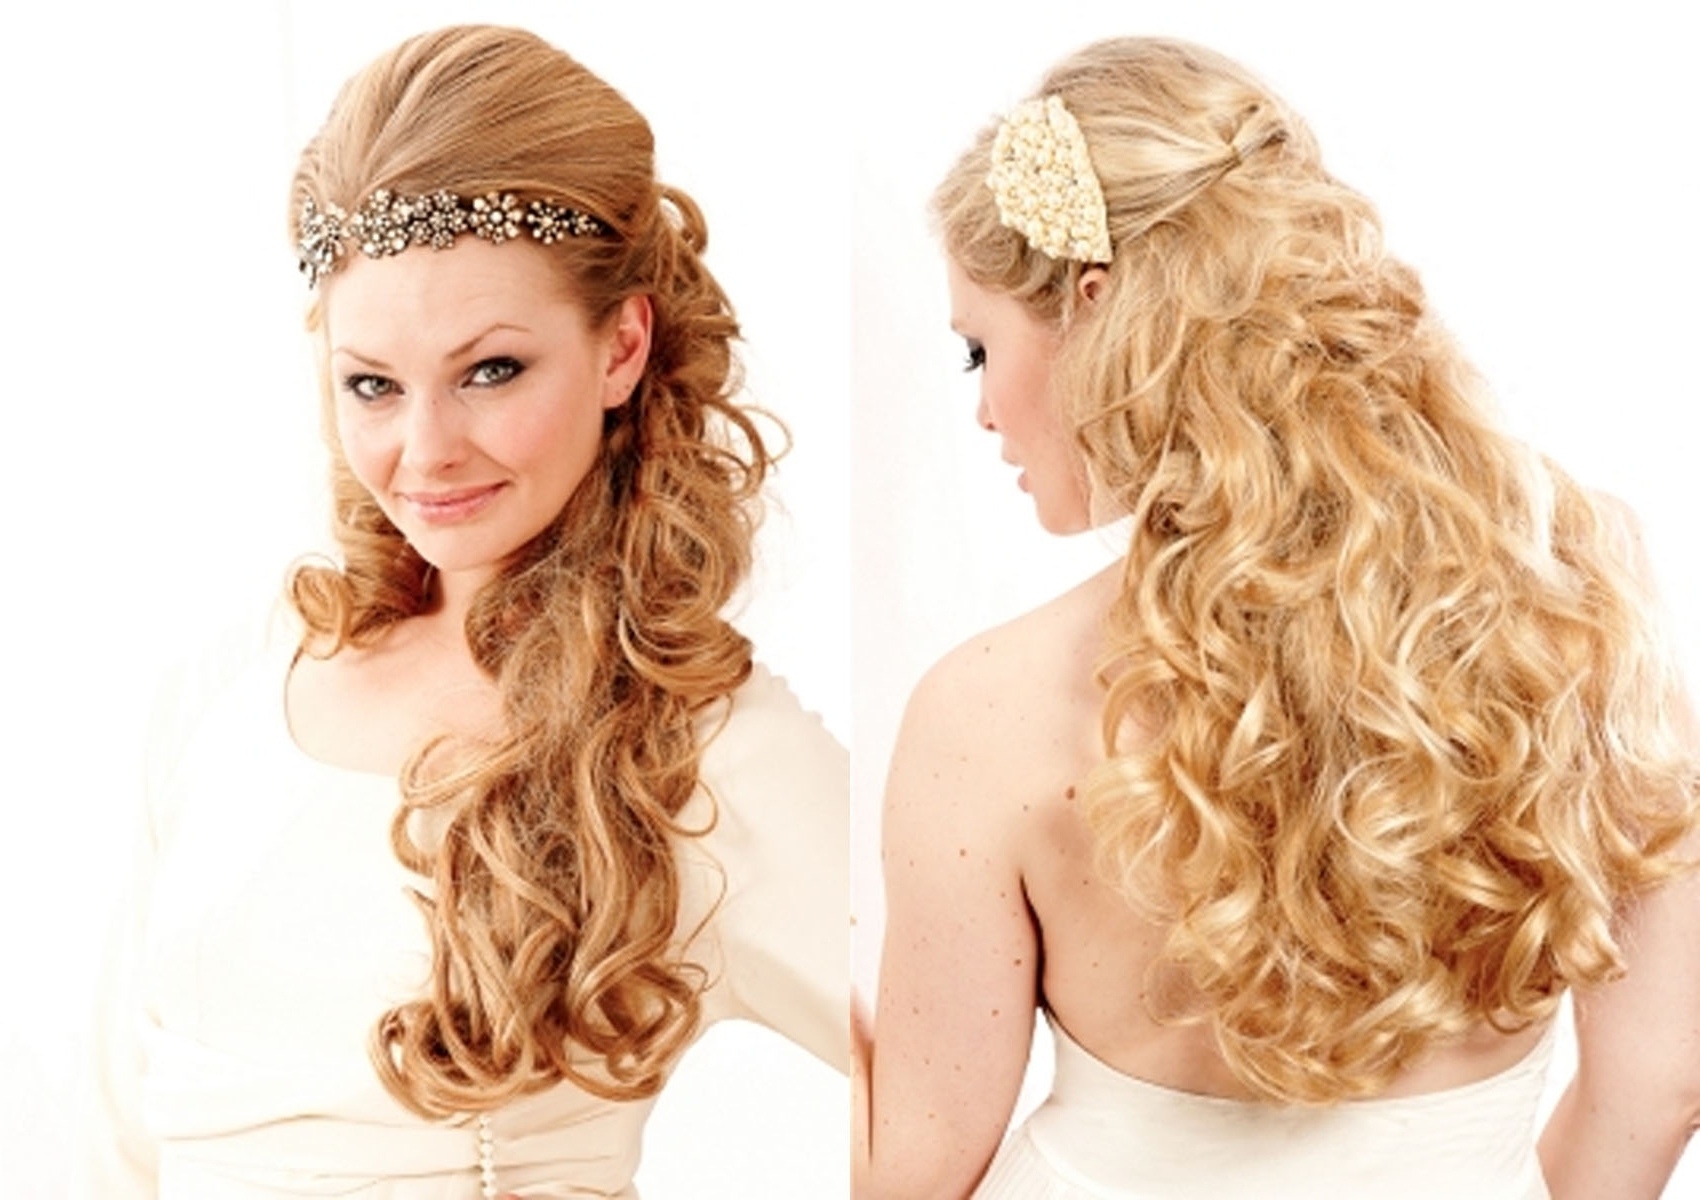 Well Known Beach Wedding Hairstyles For Long Curly Hair For Formal Hairstyles For Long Hair Wedding Trendy (View 4 of 15)